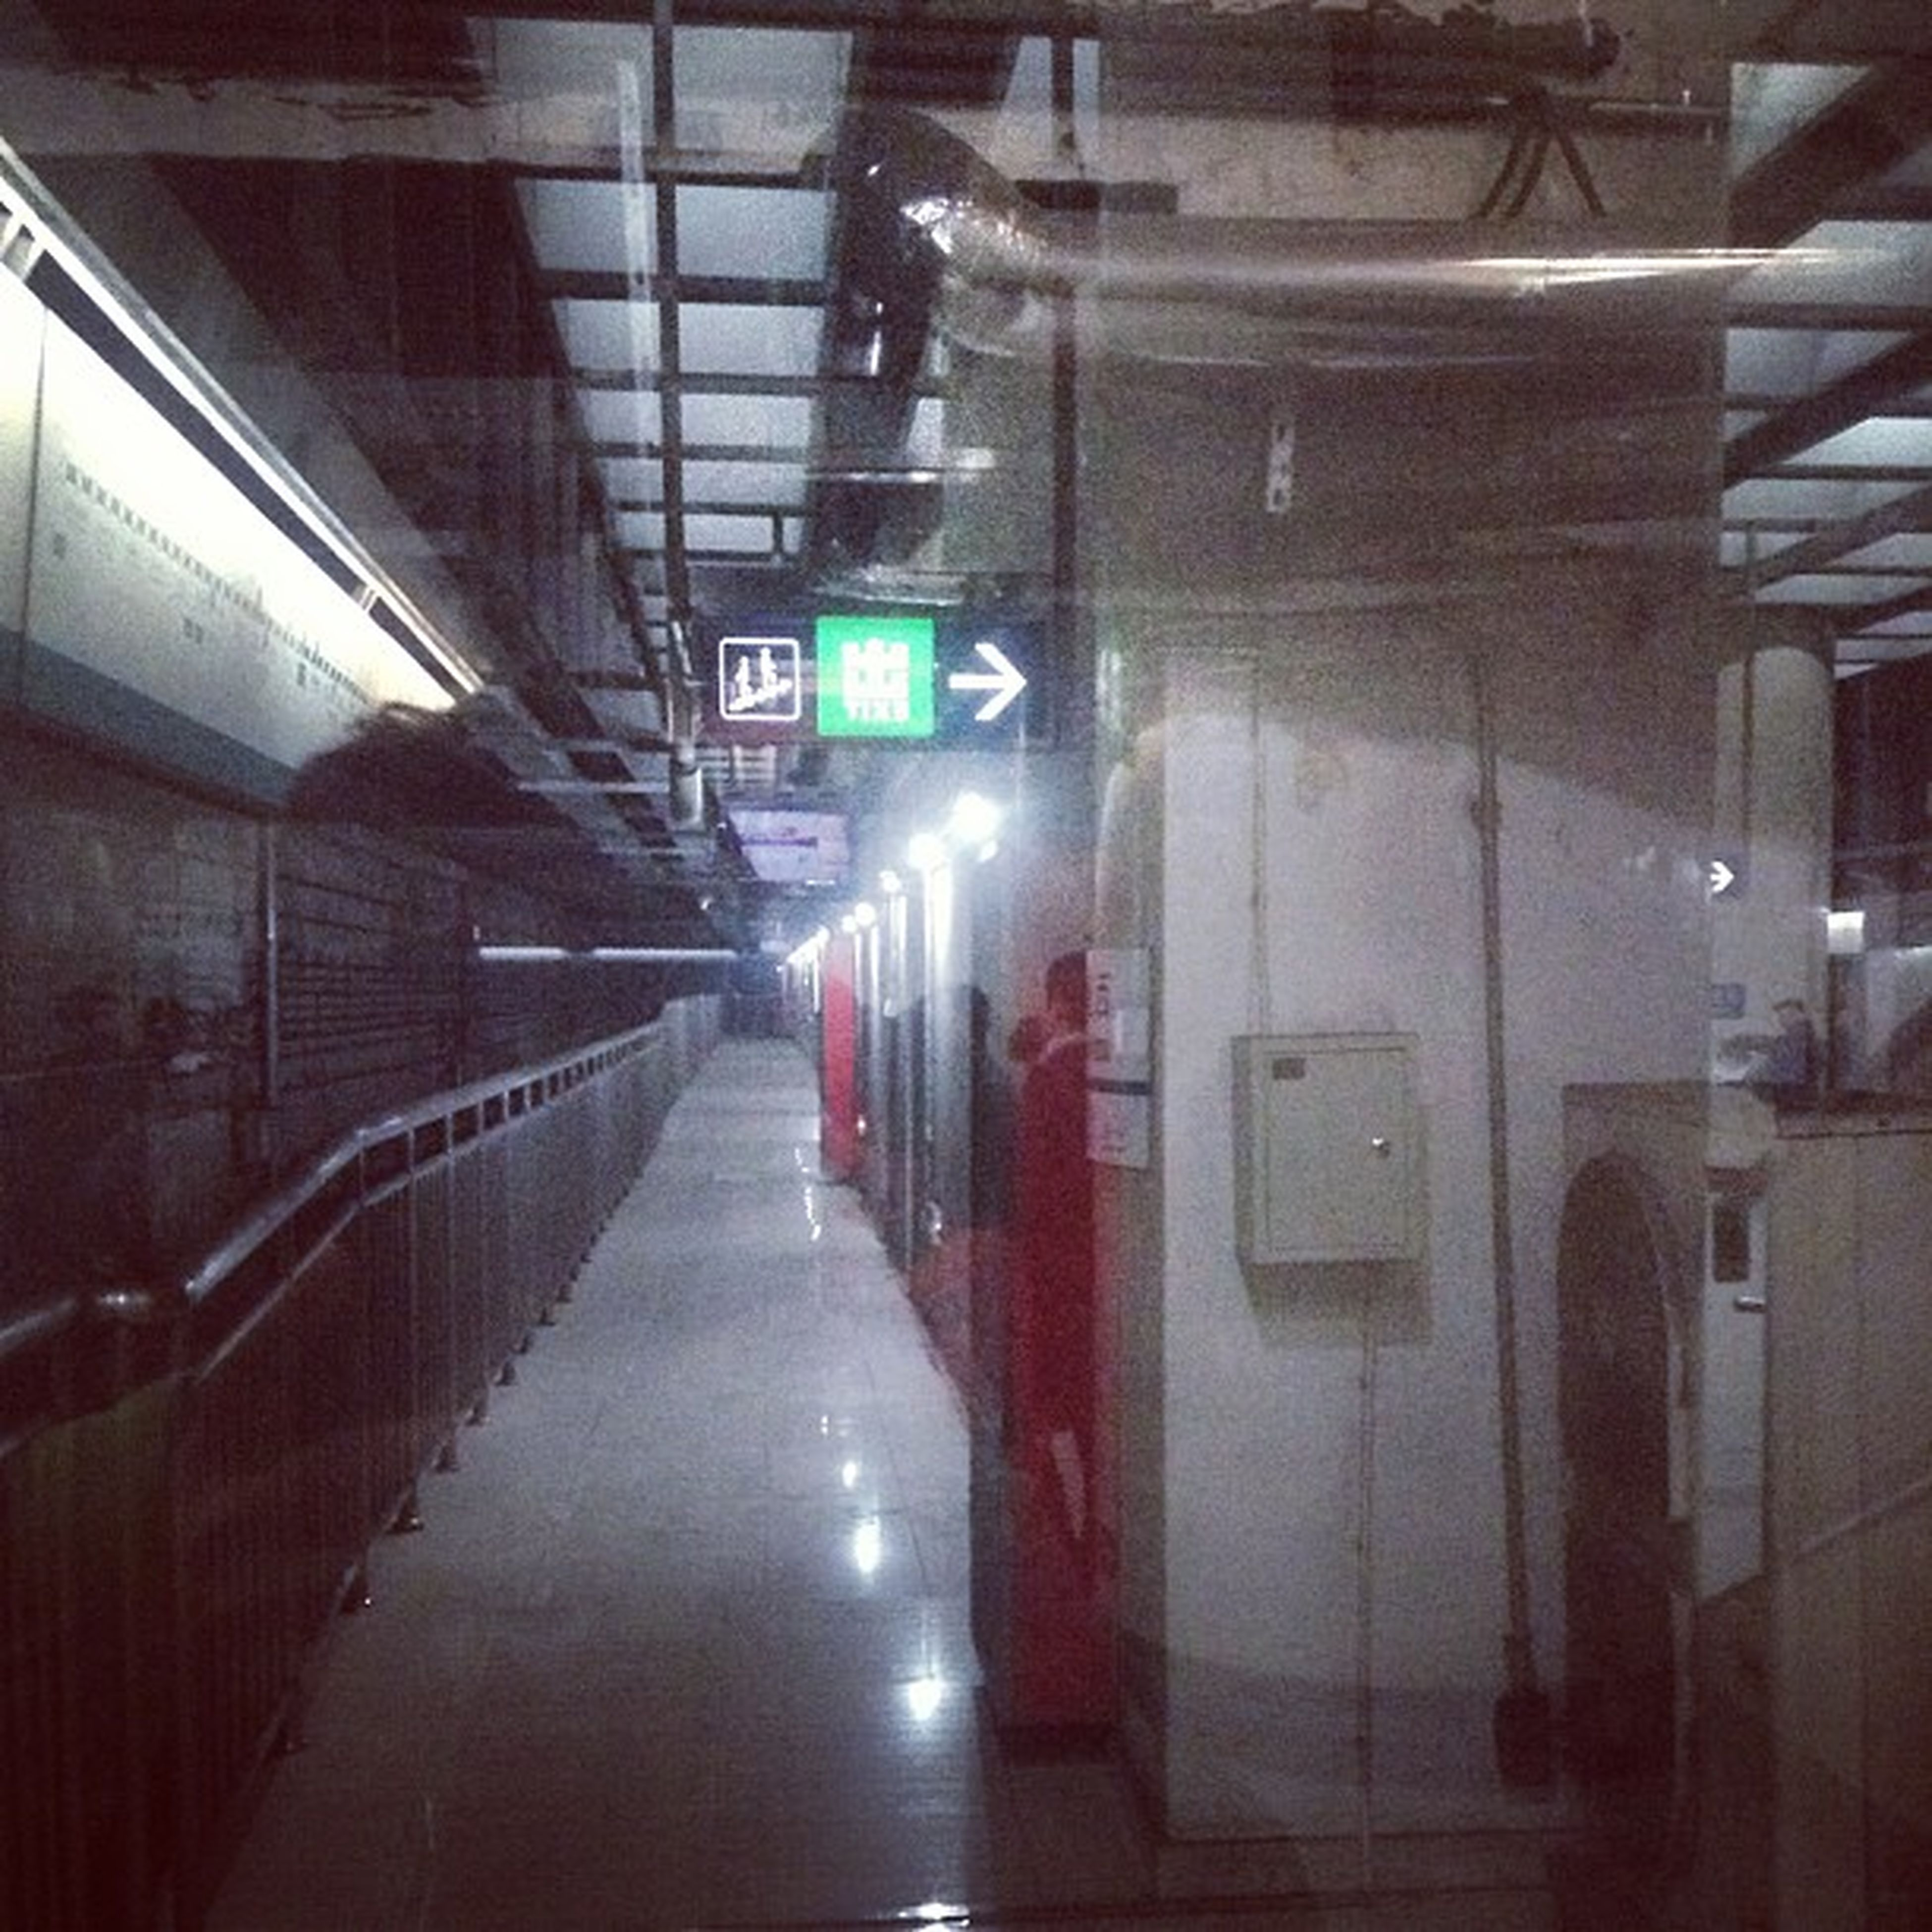 indoors, architecture, built structure, illuminated, transportation, the way forward, public transportation, railroad station, railroad station platform, rail transportation, diminishing perspective, subway station, incidental people, ceiling, railroad track, lighting equipment, empty, reflection, train - vehicle, city